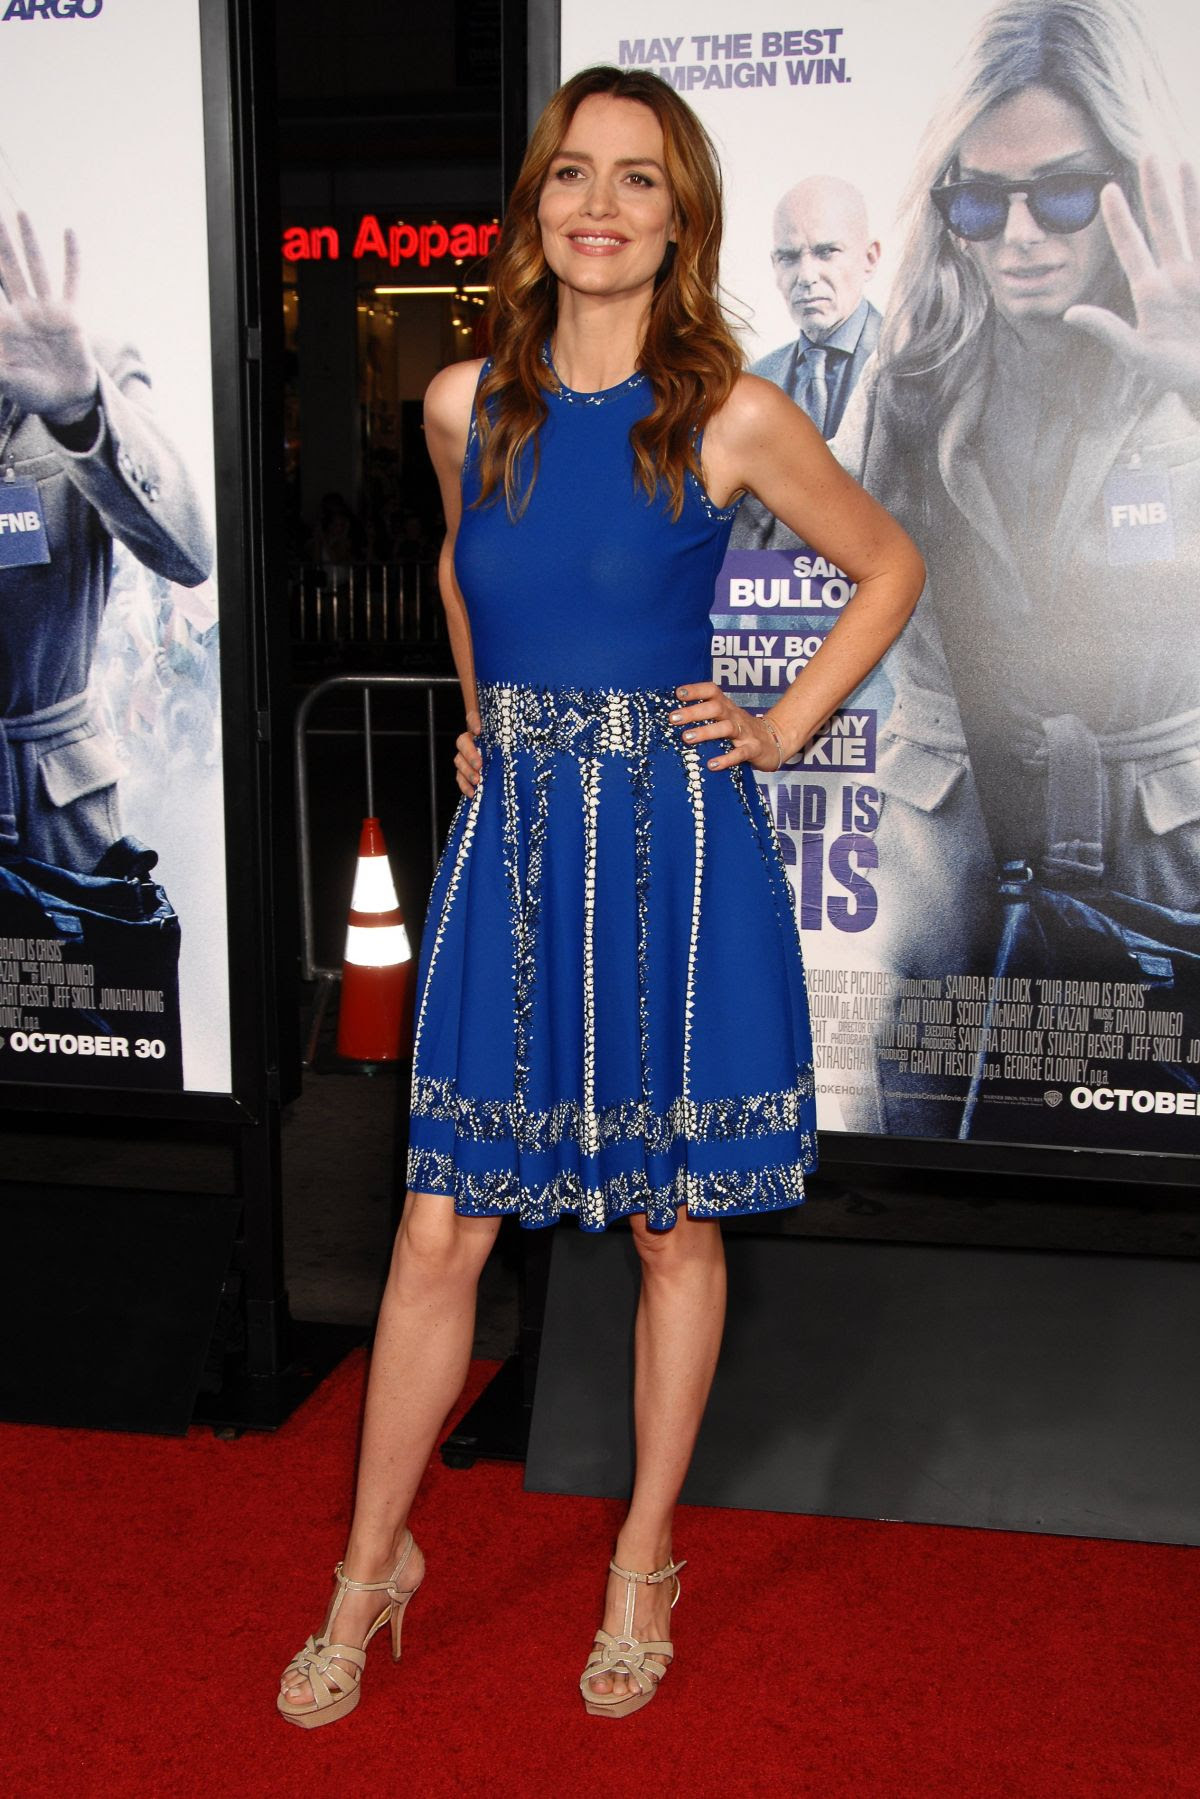 SAFFRON BURROWS at Our Brand Is Crisis Premiere in Hollywood 10/26/2015